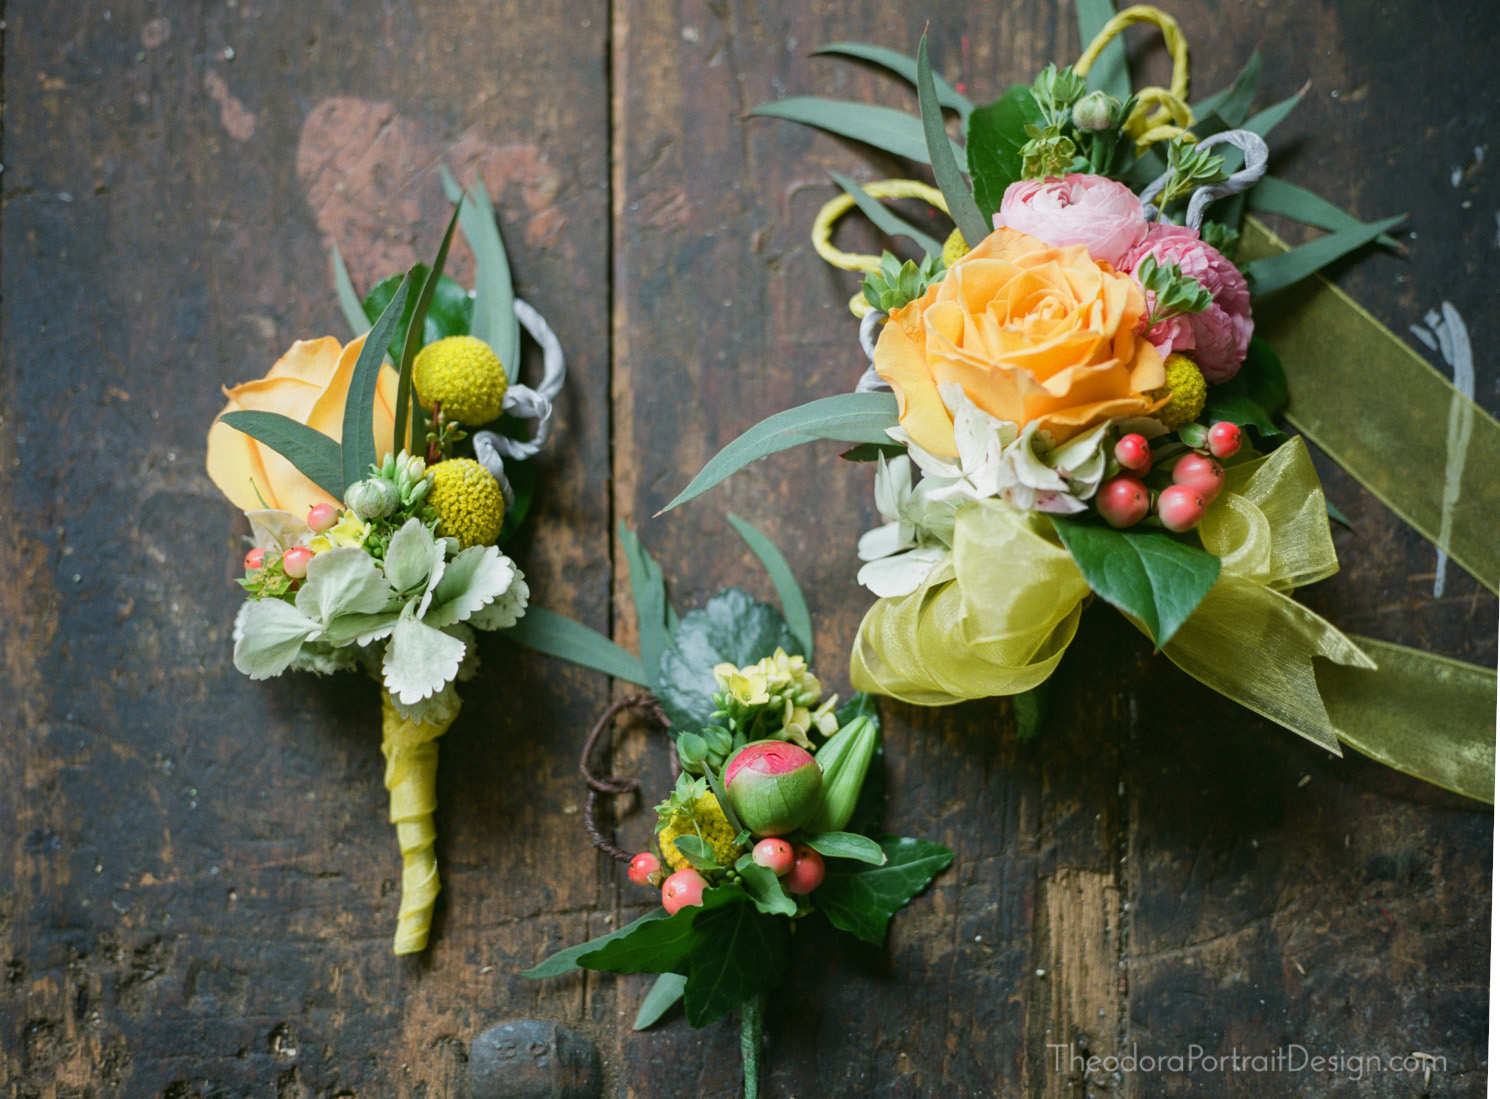 wedding boutonnieres and corsages on a perfectly aged rustic workbench  www.TheodoraPortraitDesign.com